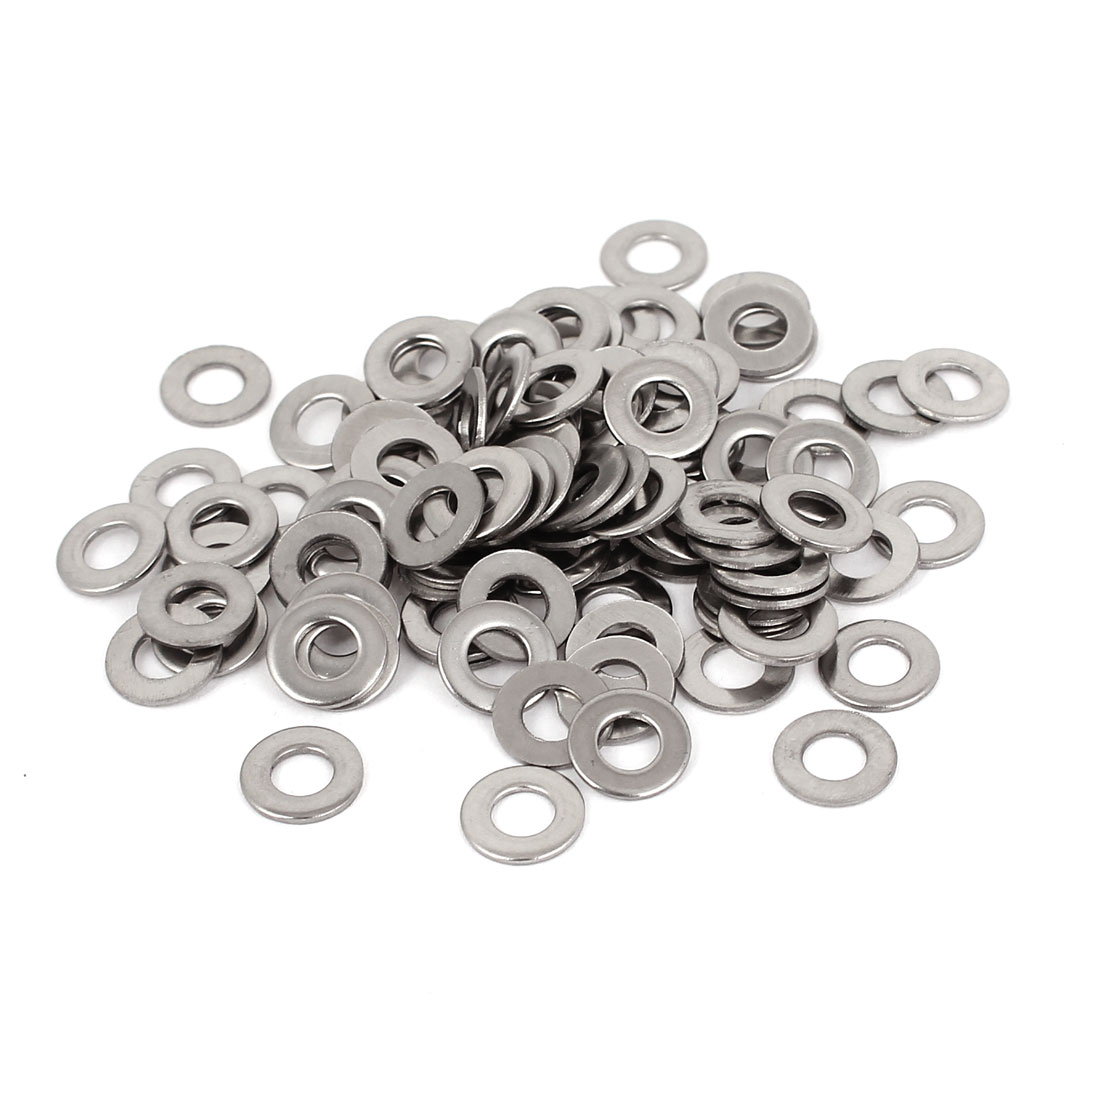 100pcs Silver Tone 304 Stainless Steel Flat Washer #8 for Screws Bolts